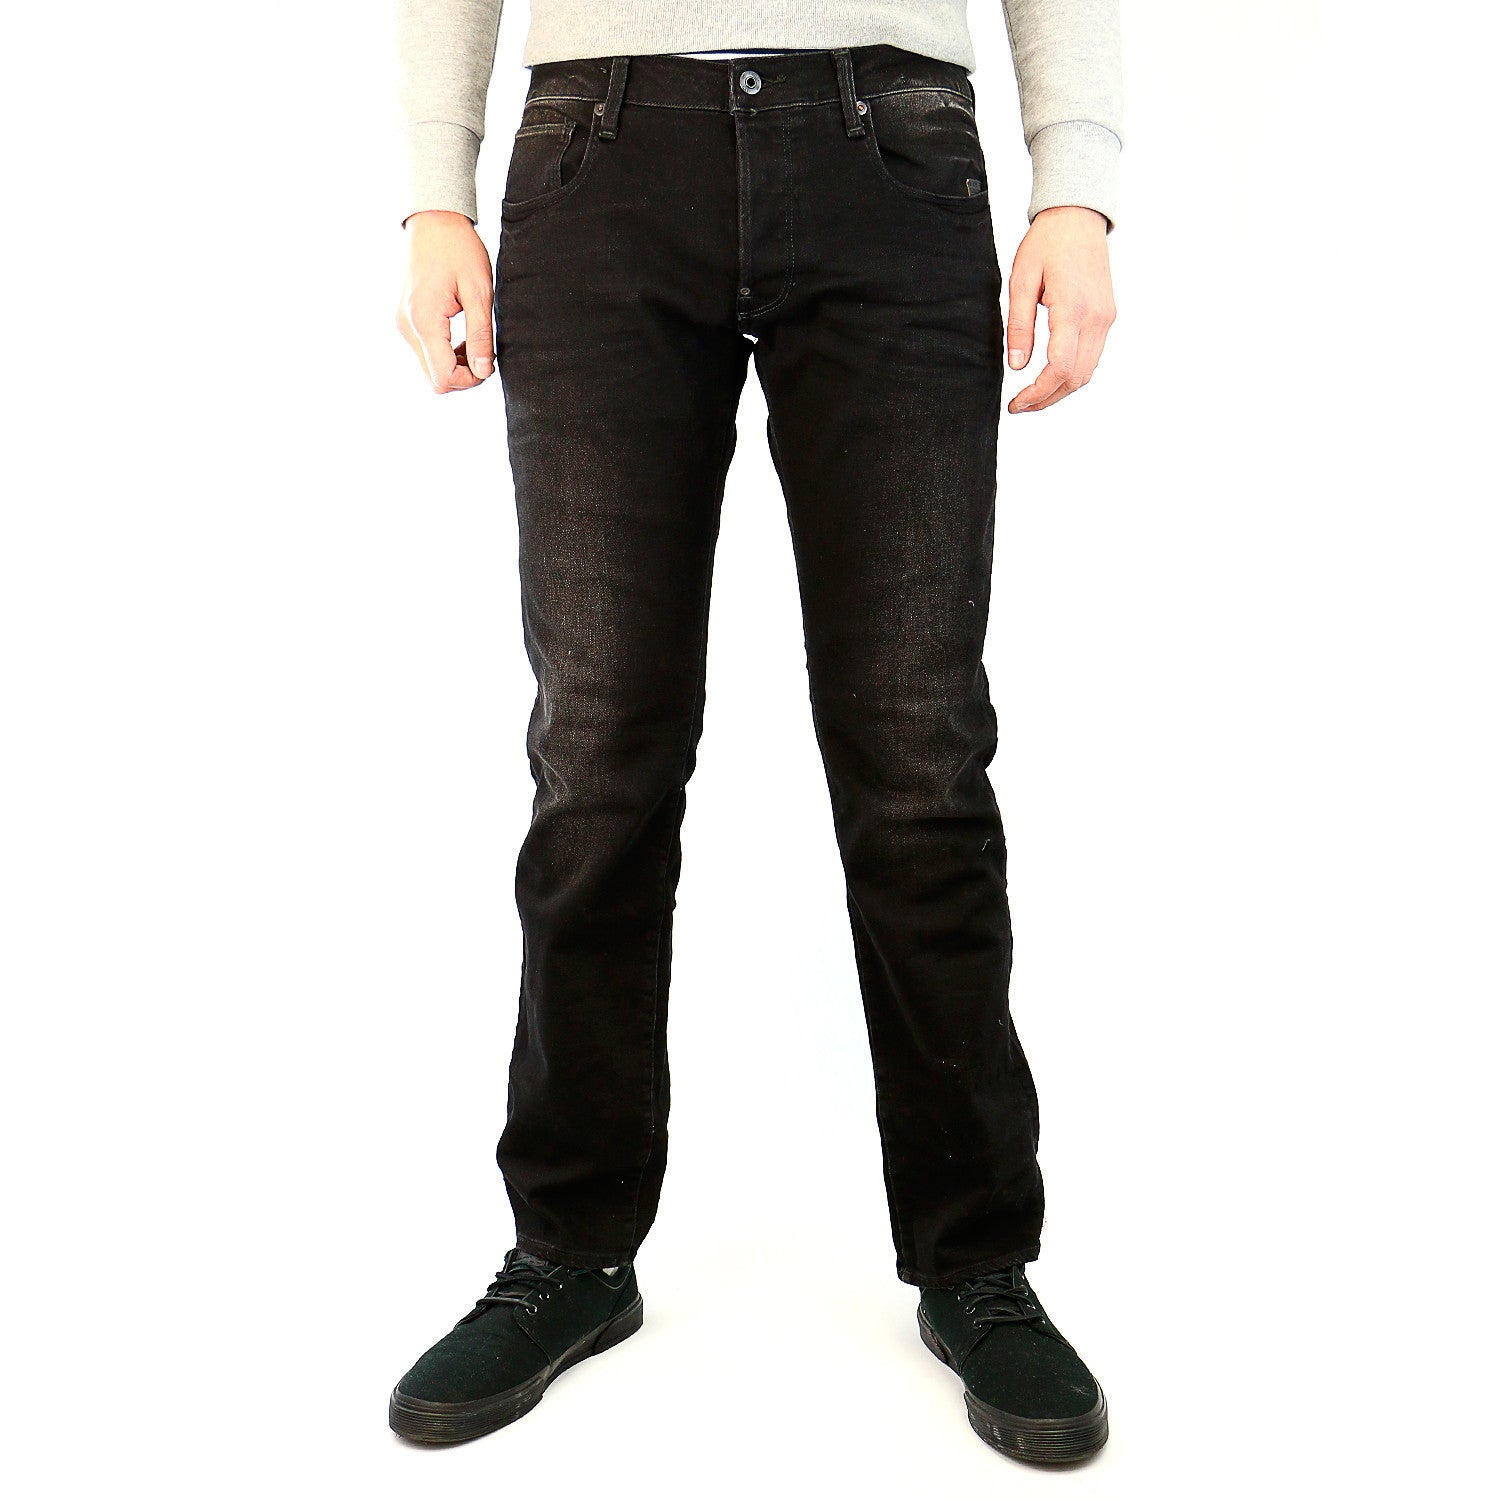 ef7d15b0ee4 G-Star Defend Straight Jean - Dark Aged - Mens - Shoplifestyle